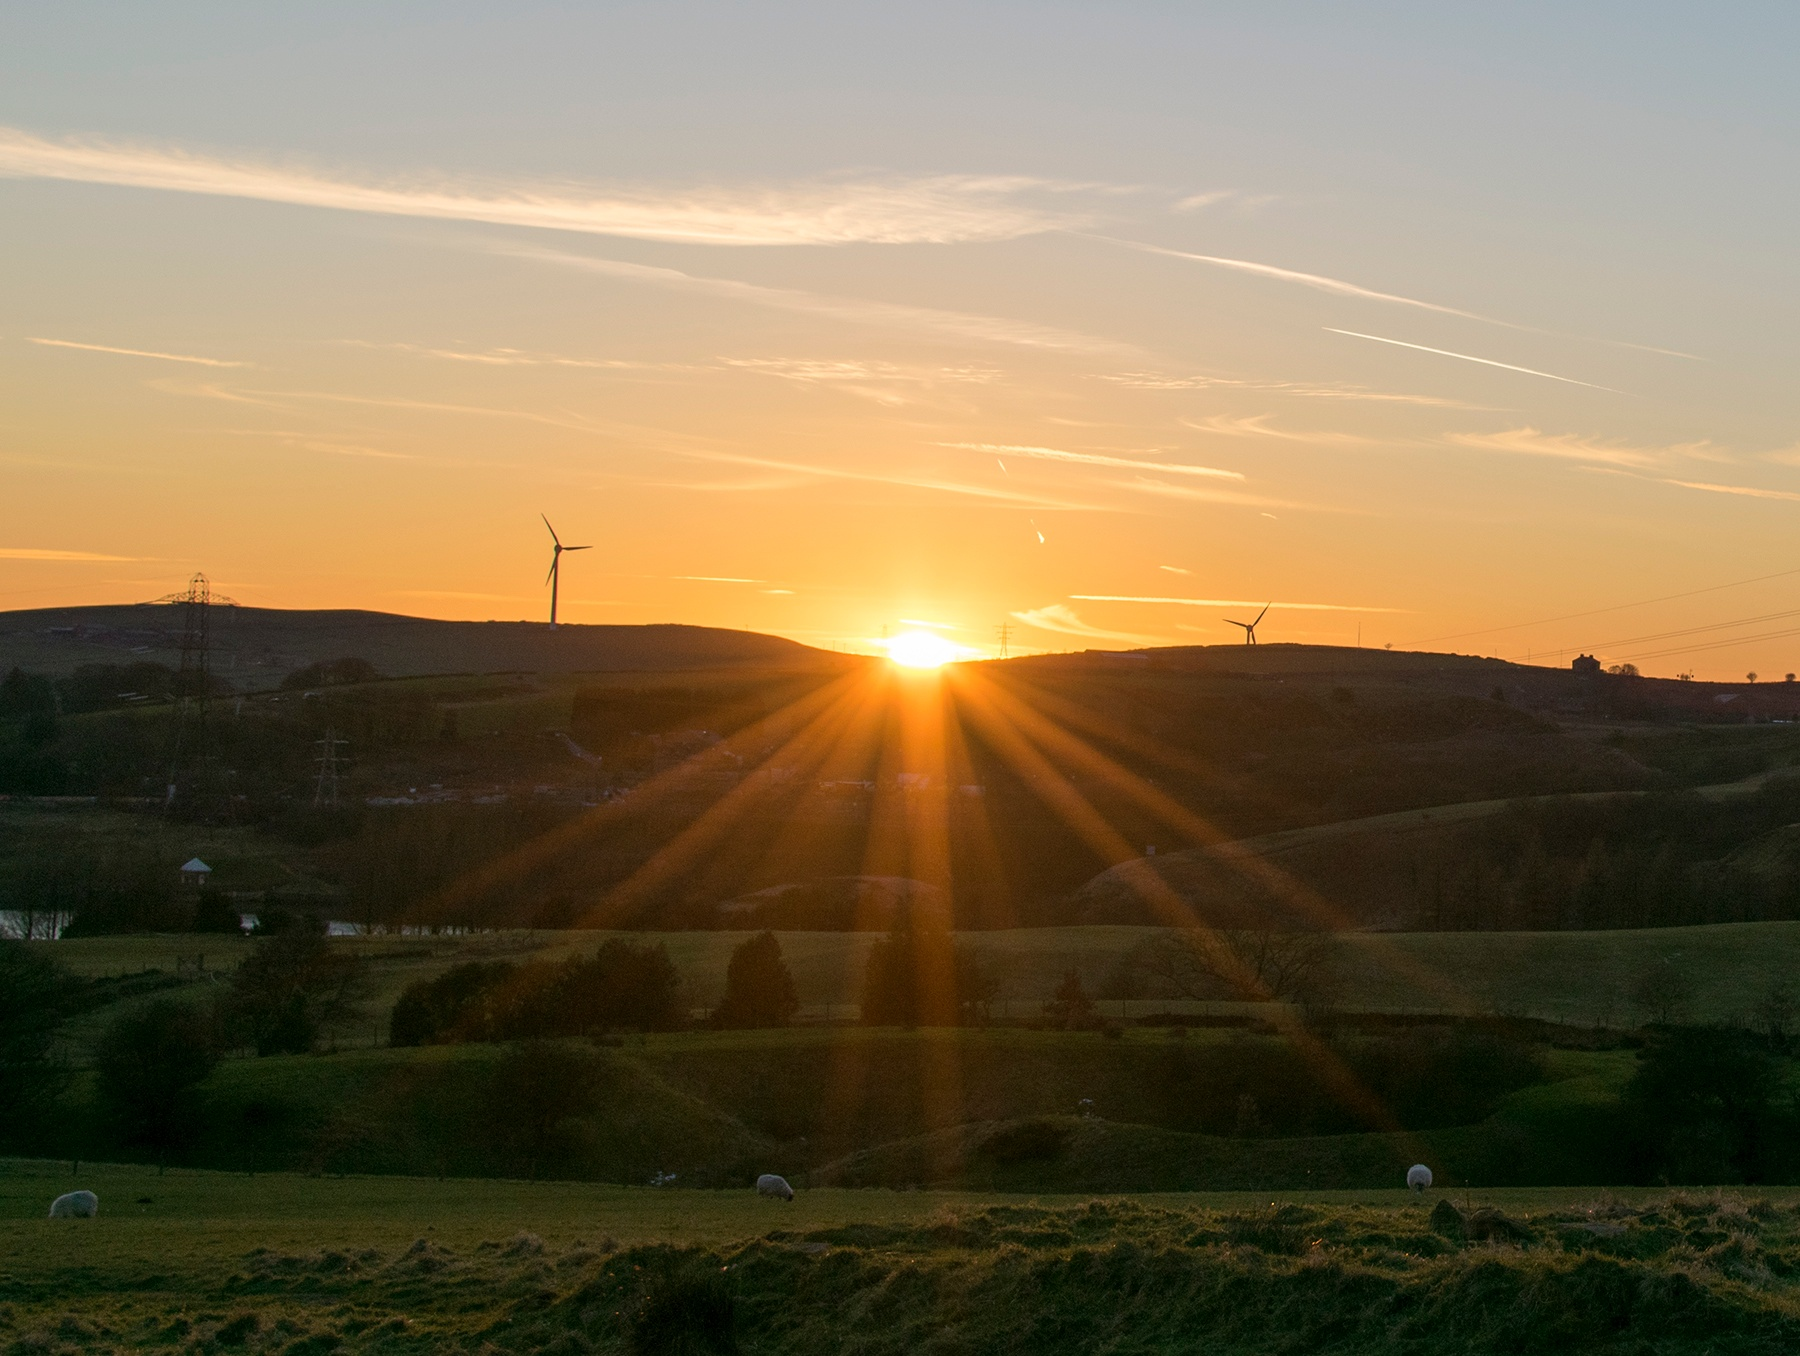 Sun and wind Energy  by Ian M